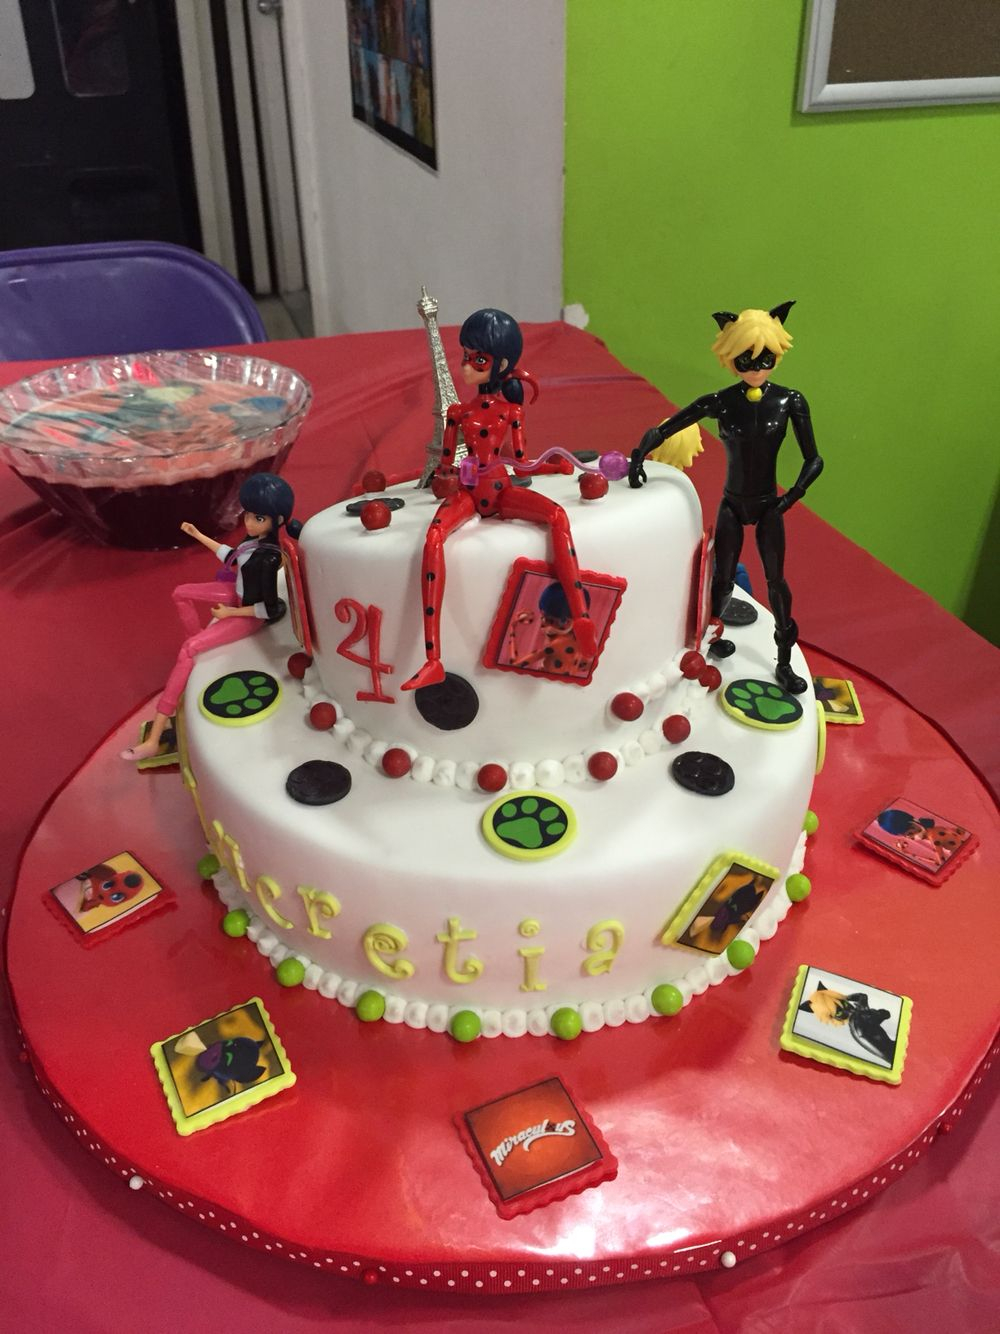 32+ Beautiful Photo of Ladybug Birthday Cake